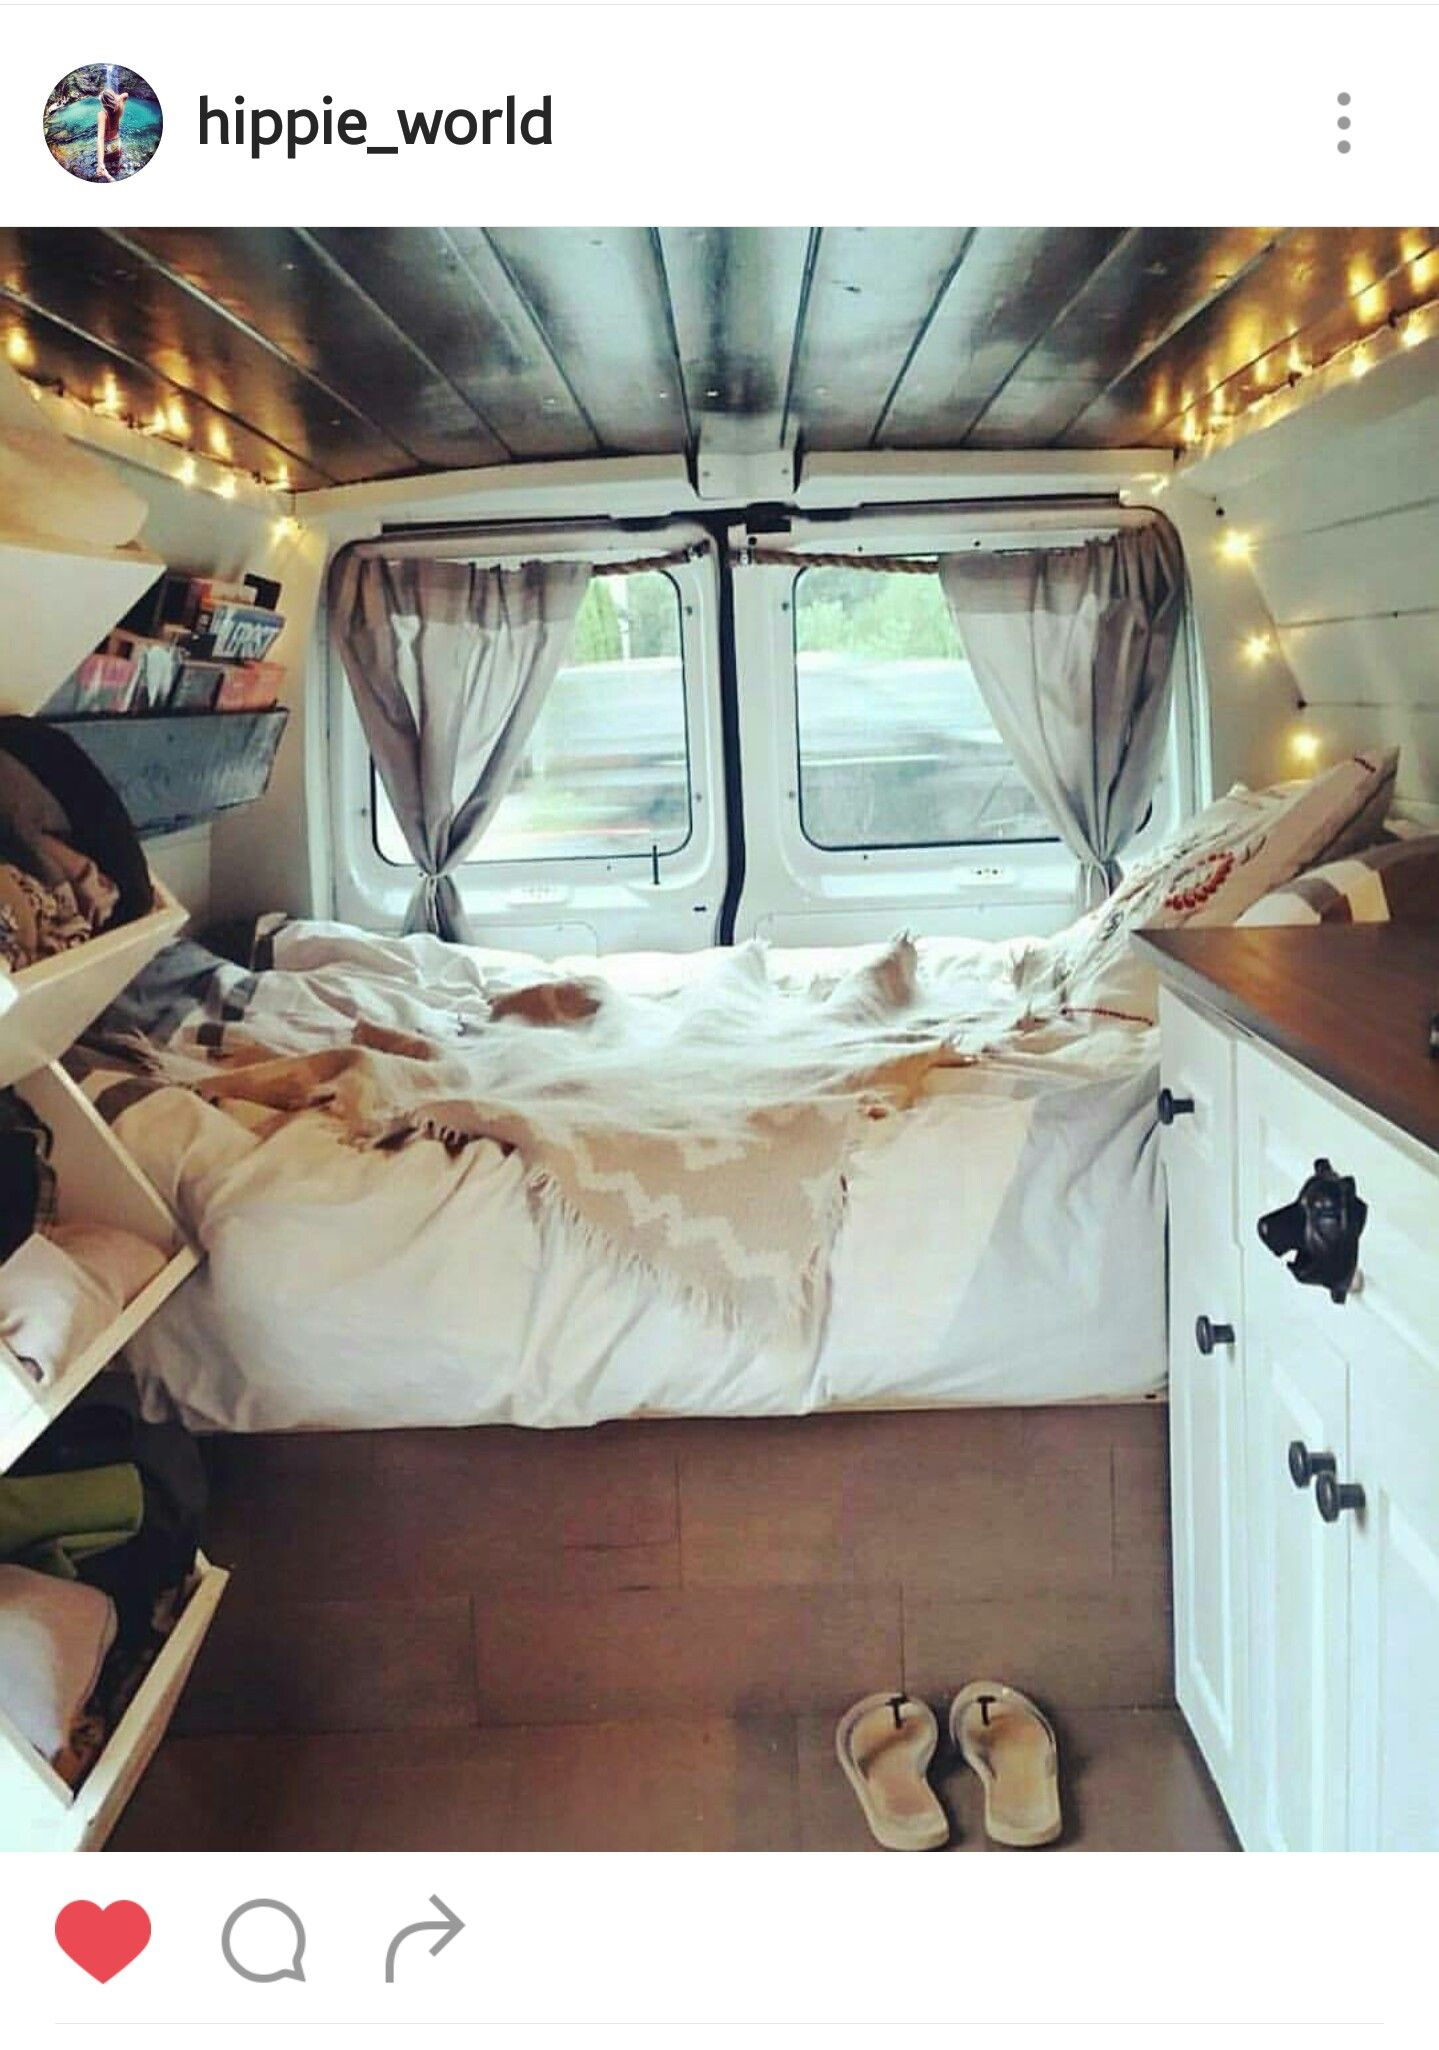 Wohnwagen Deko Ideen I D Live In This One Day I Ll Have A Traveling Van Travel